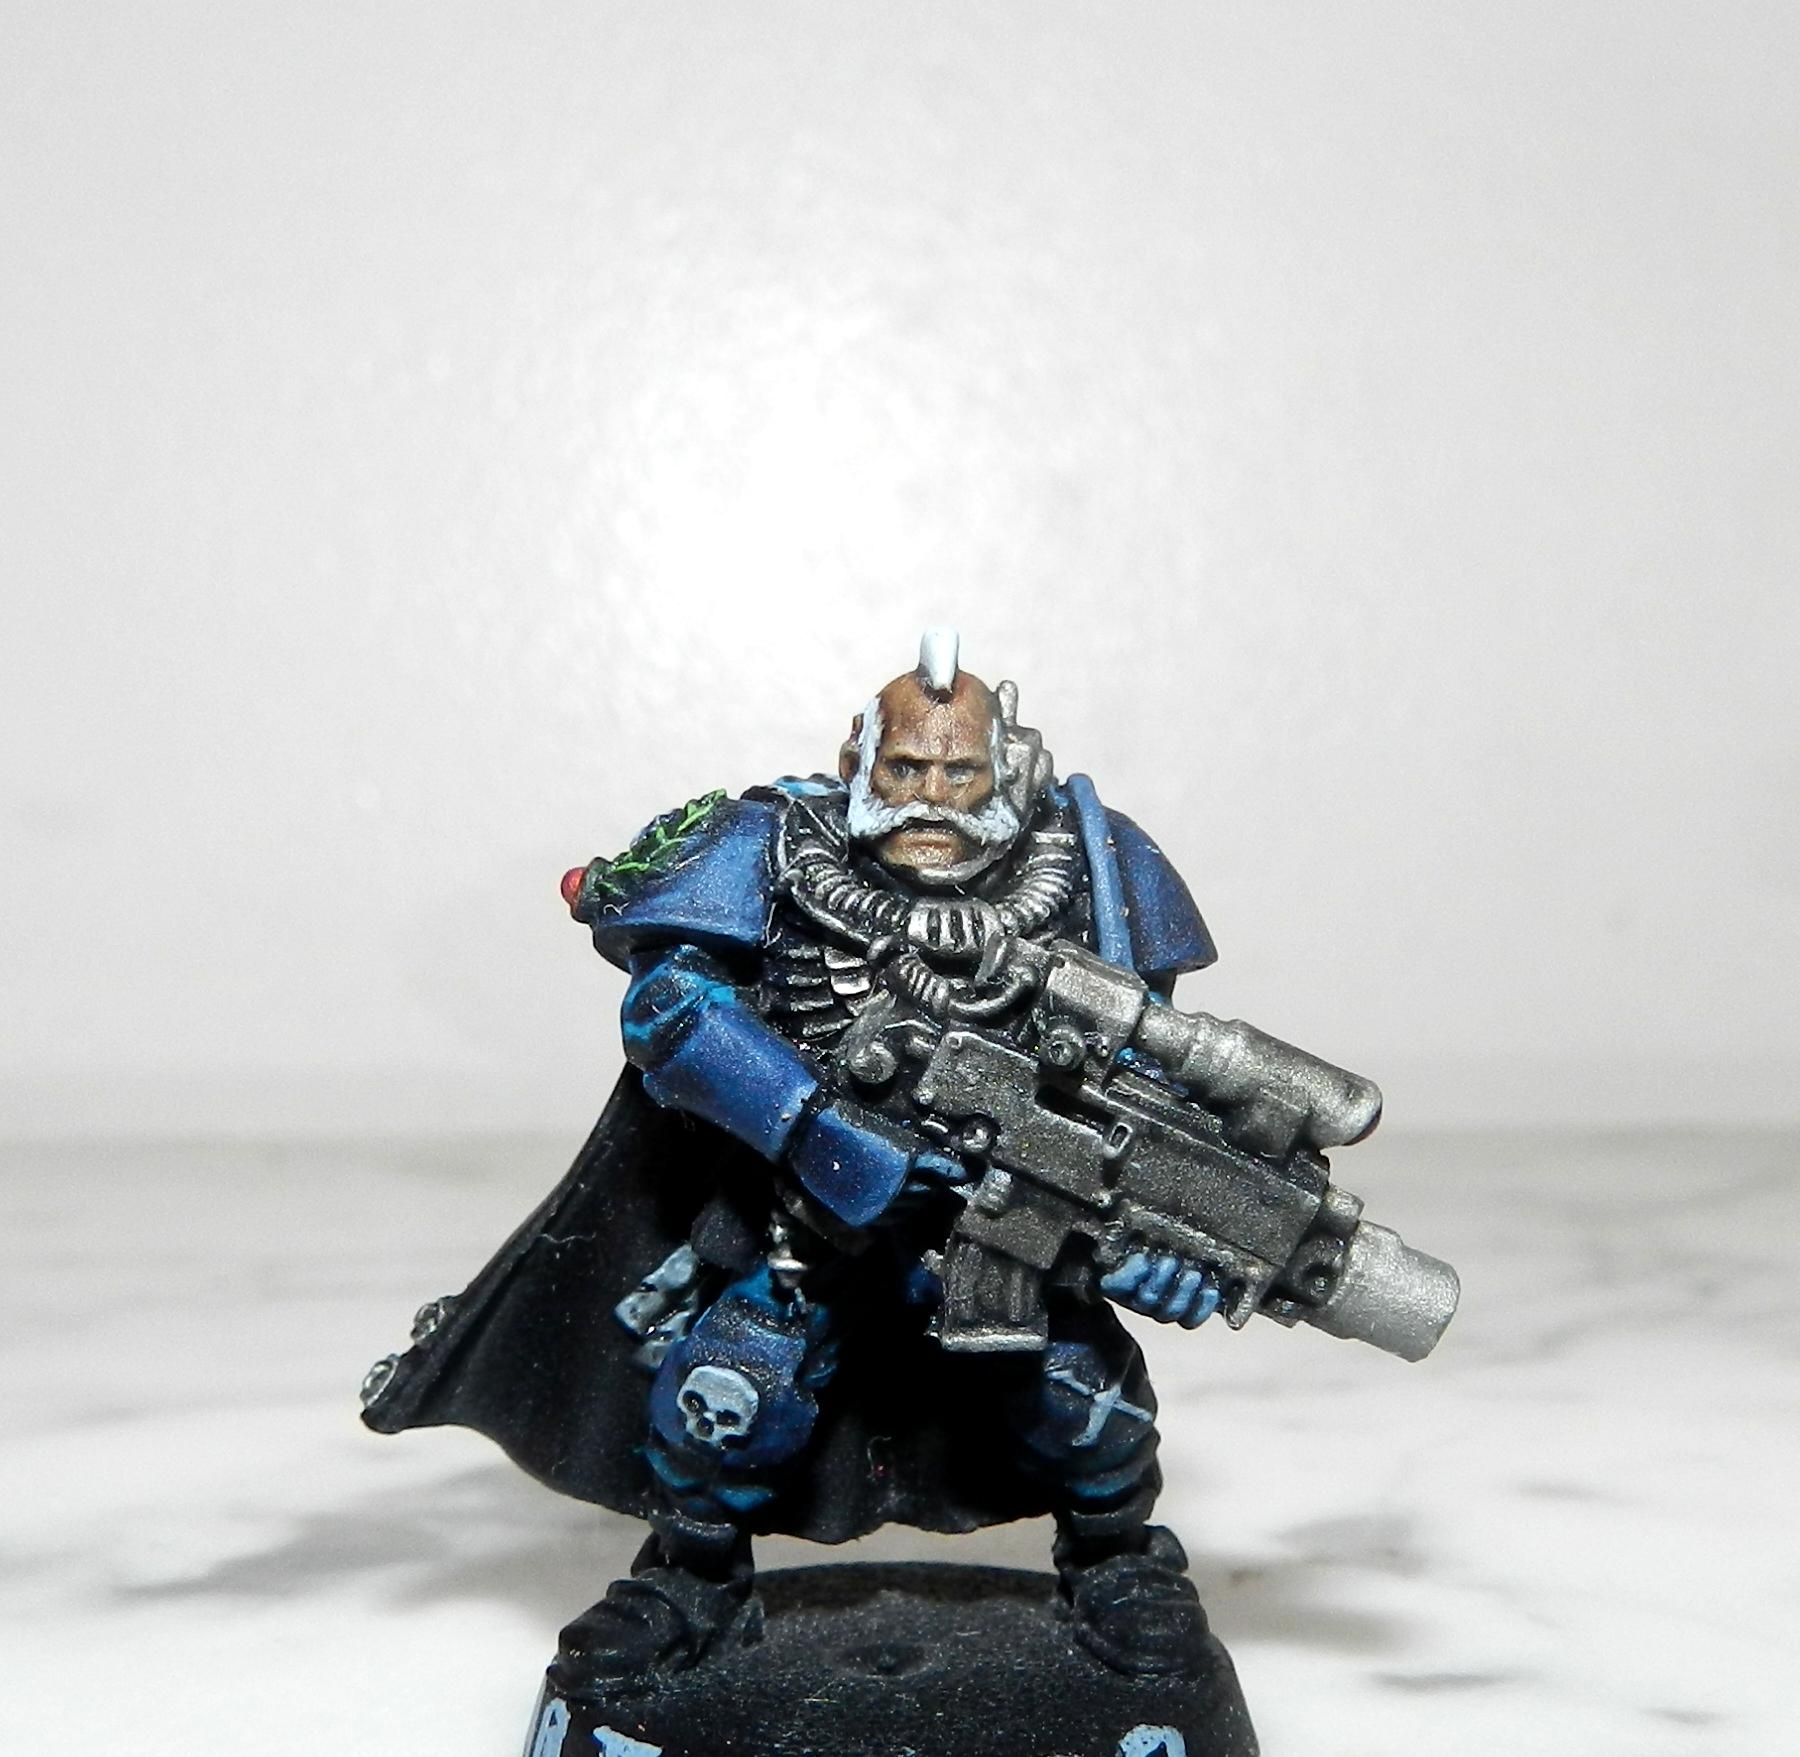 Adeptus Arbites, Cadians, Camouflage, Carapace, Command Squad, Commissar, Drop Troop, Gears Of War, Grenadier, Grenadiers, Guardsmen, Headquarter, Imperial Guard, Judge, Junior Officer, Officer, Scouts, Seargent, Space Wolves, Spaces Marines, Telion, Urban, Veteran, Wolf Scouts, Work In Progress